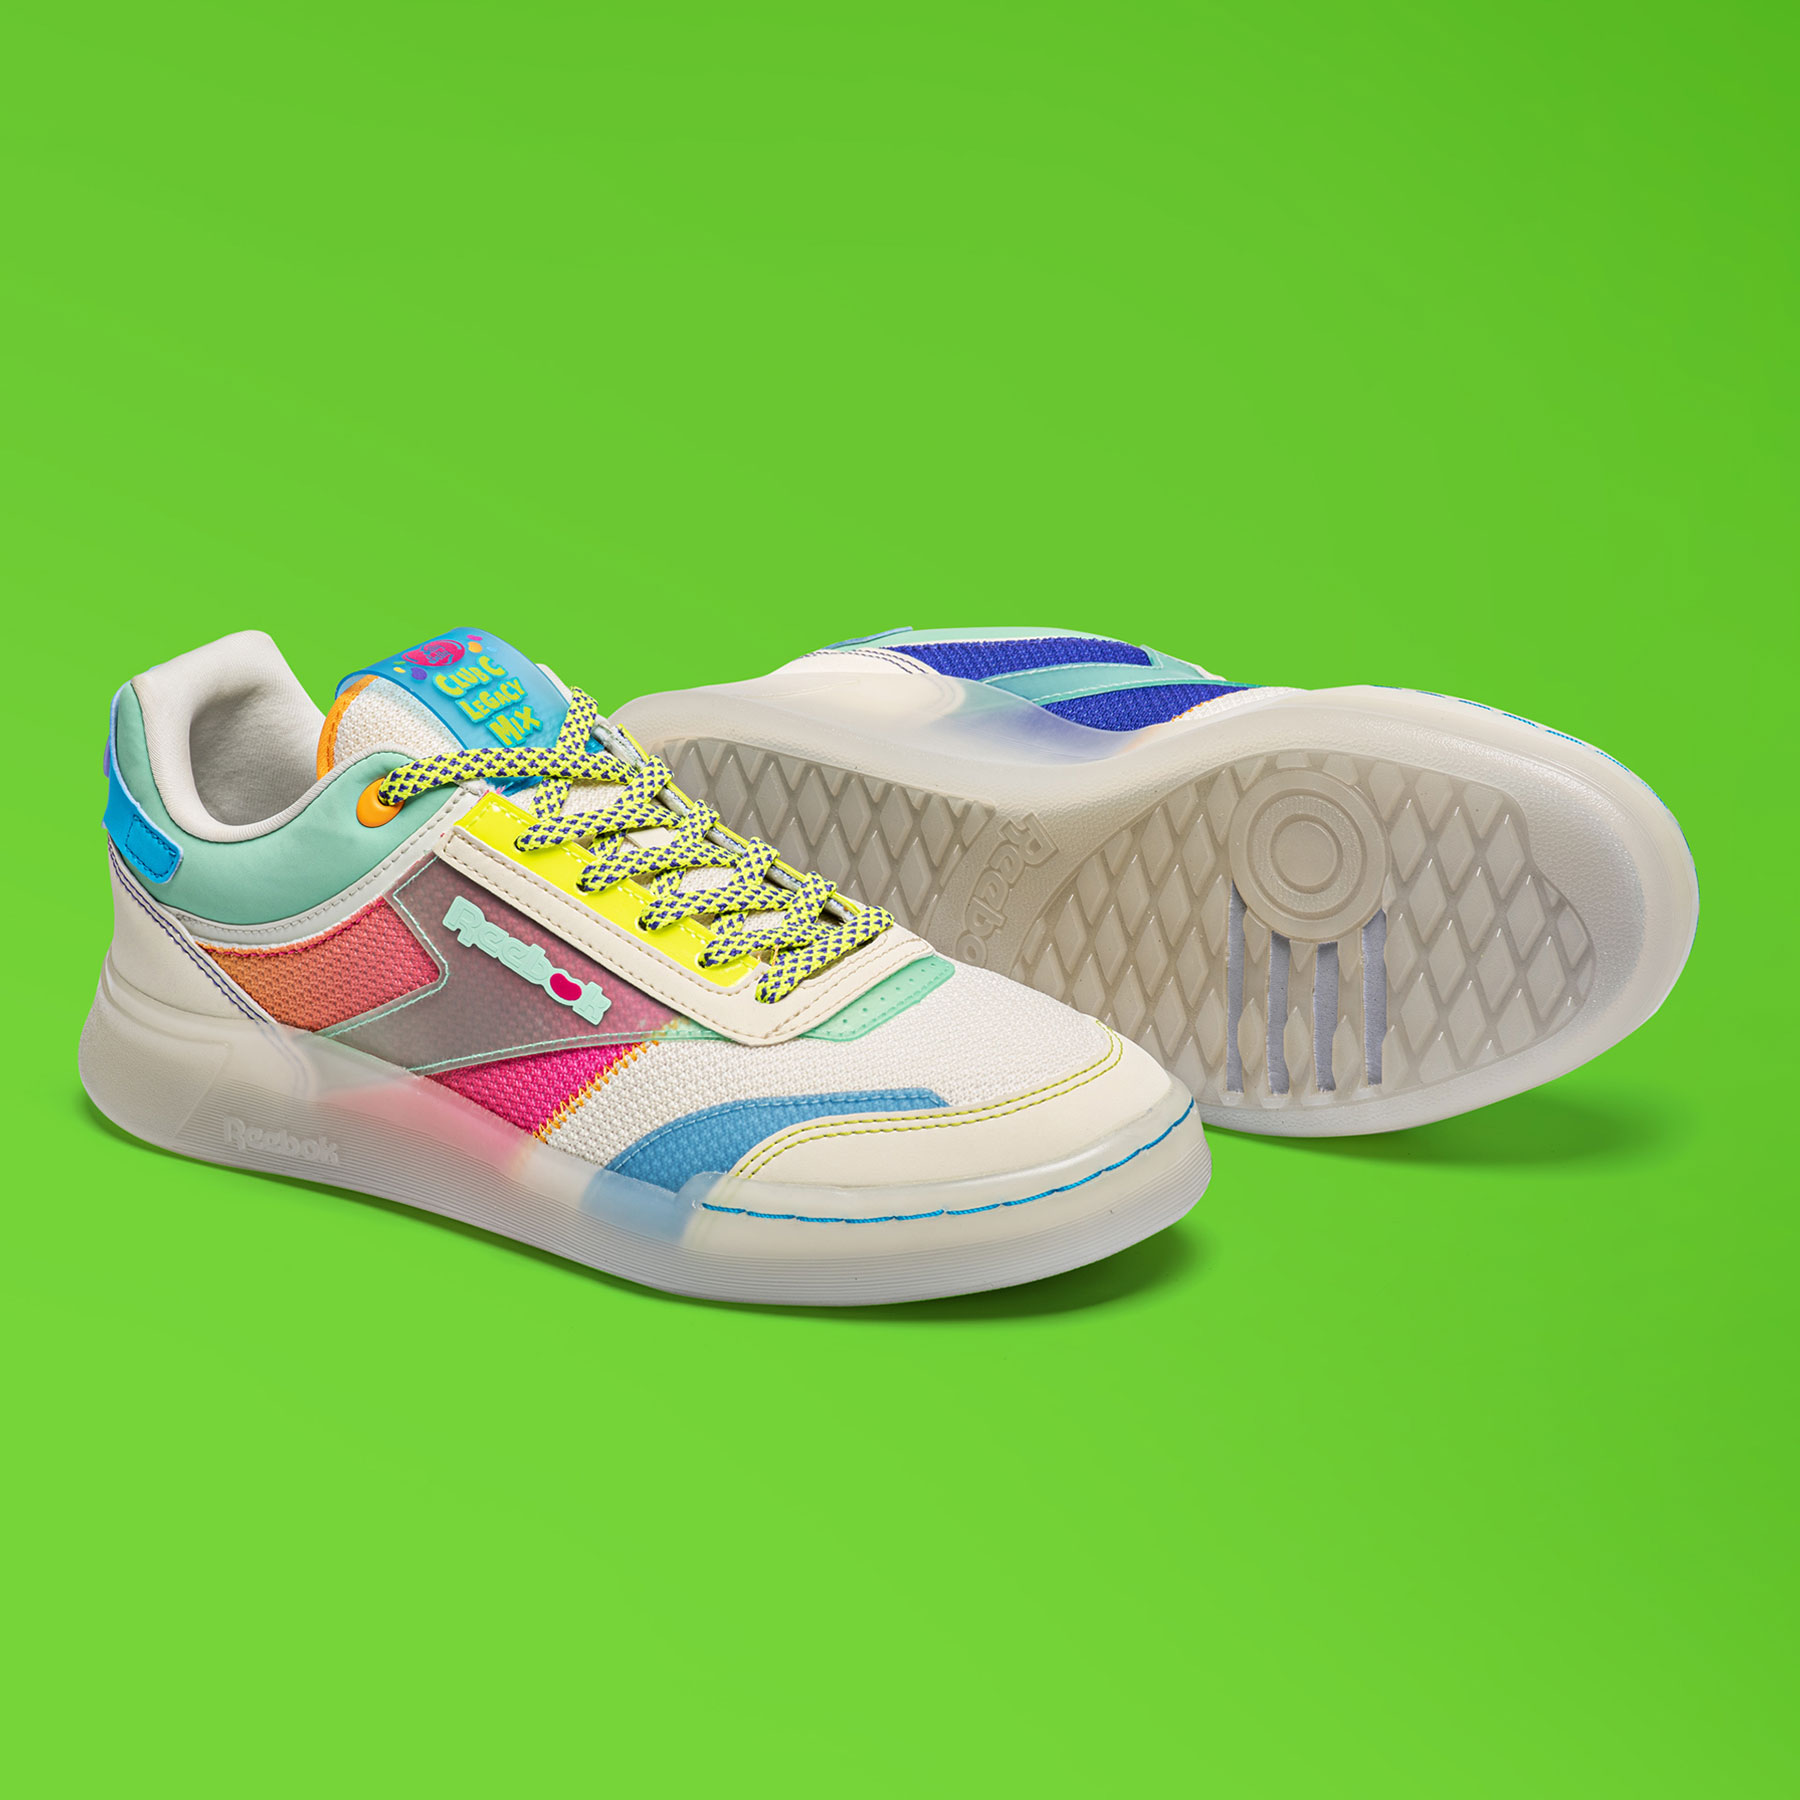 Reebok x Jelly Belly collection